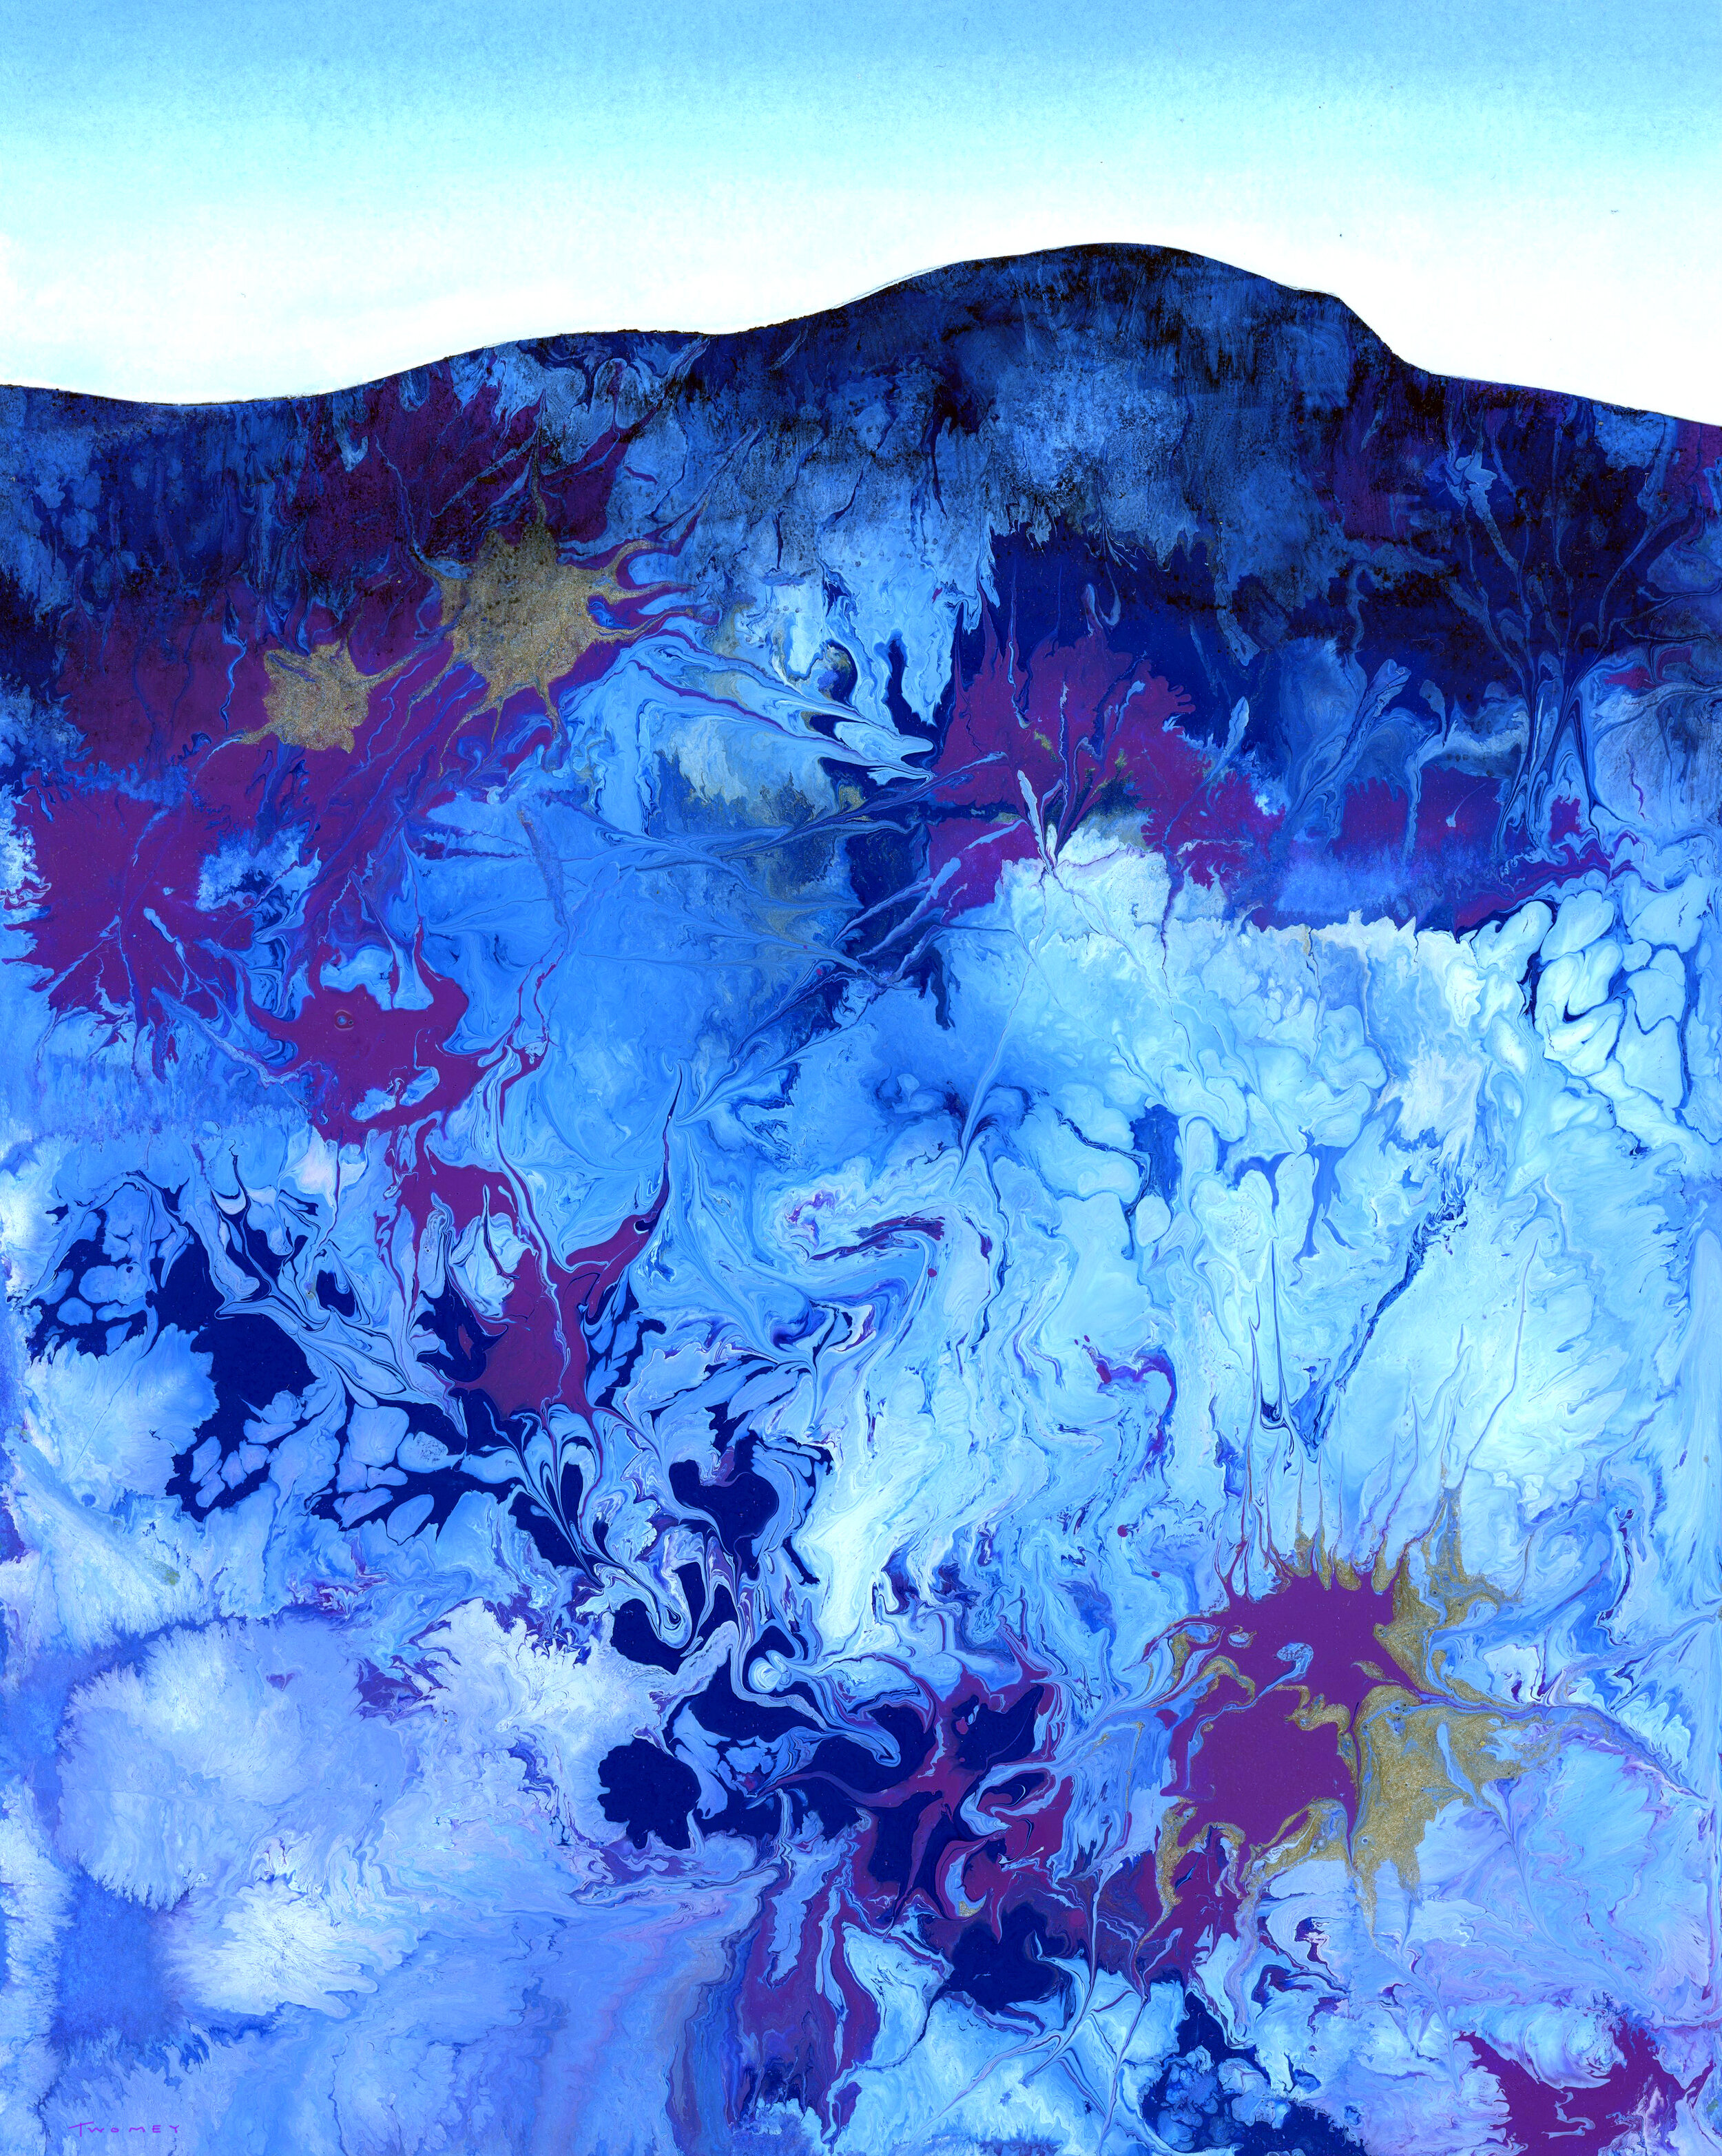 """Ecosystem Mountain"" by C. Twomey, acrylic pour and hand painting"